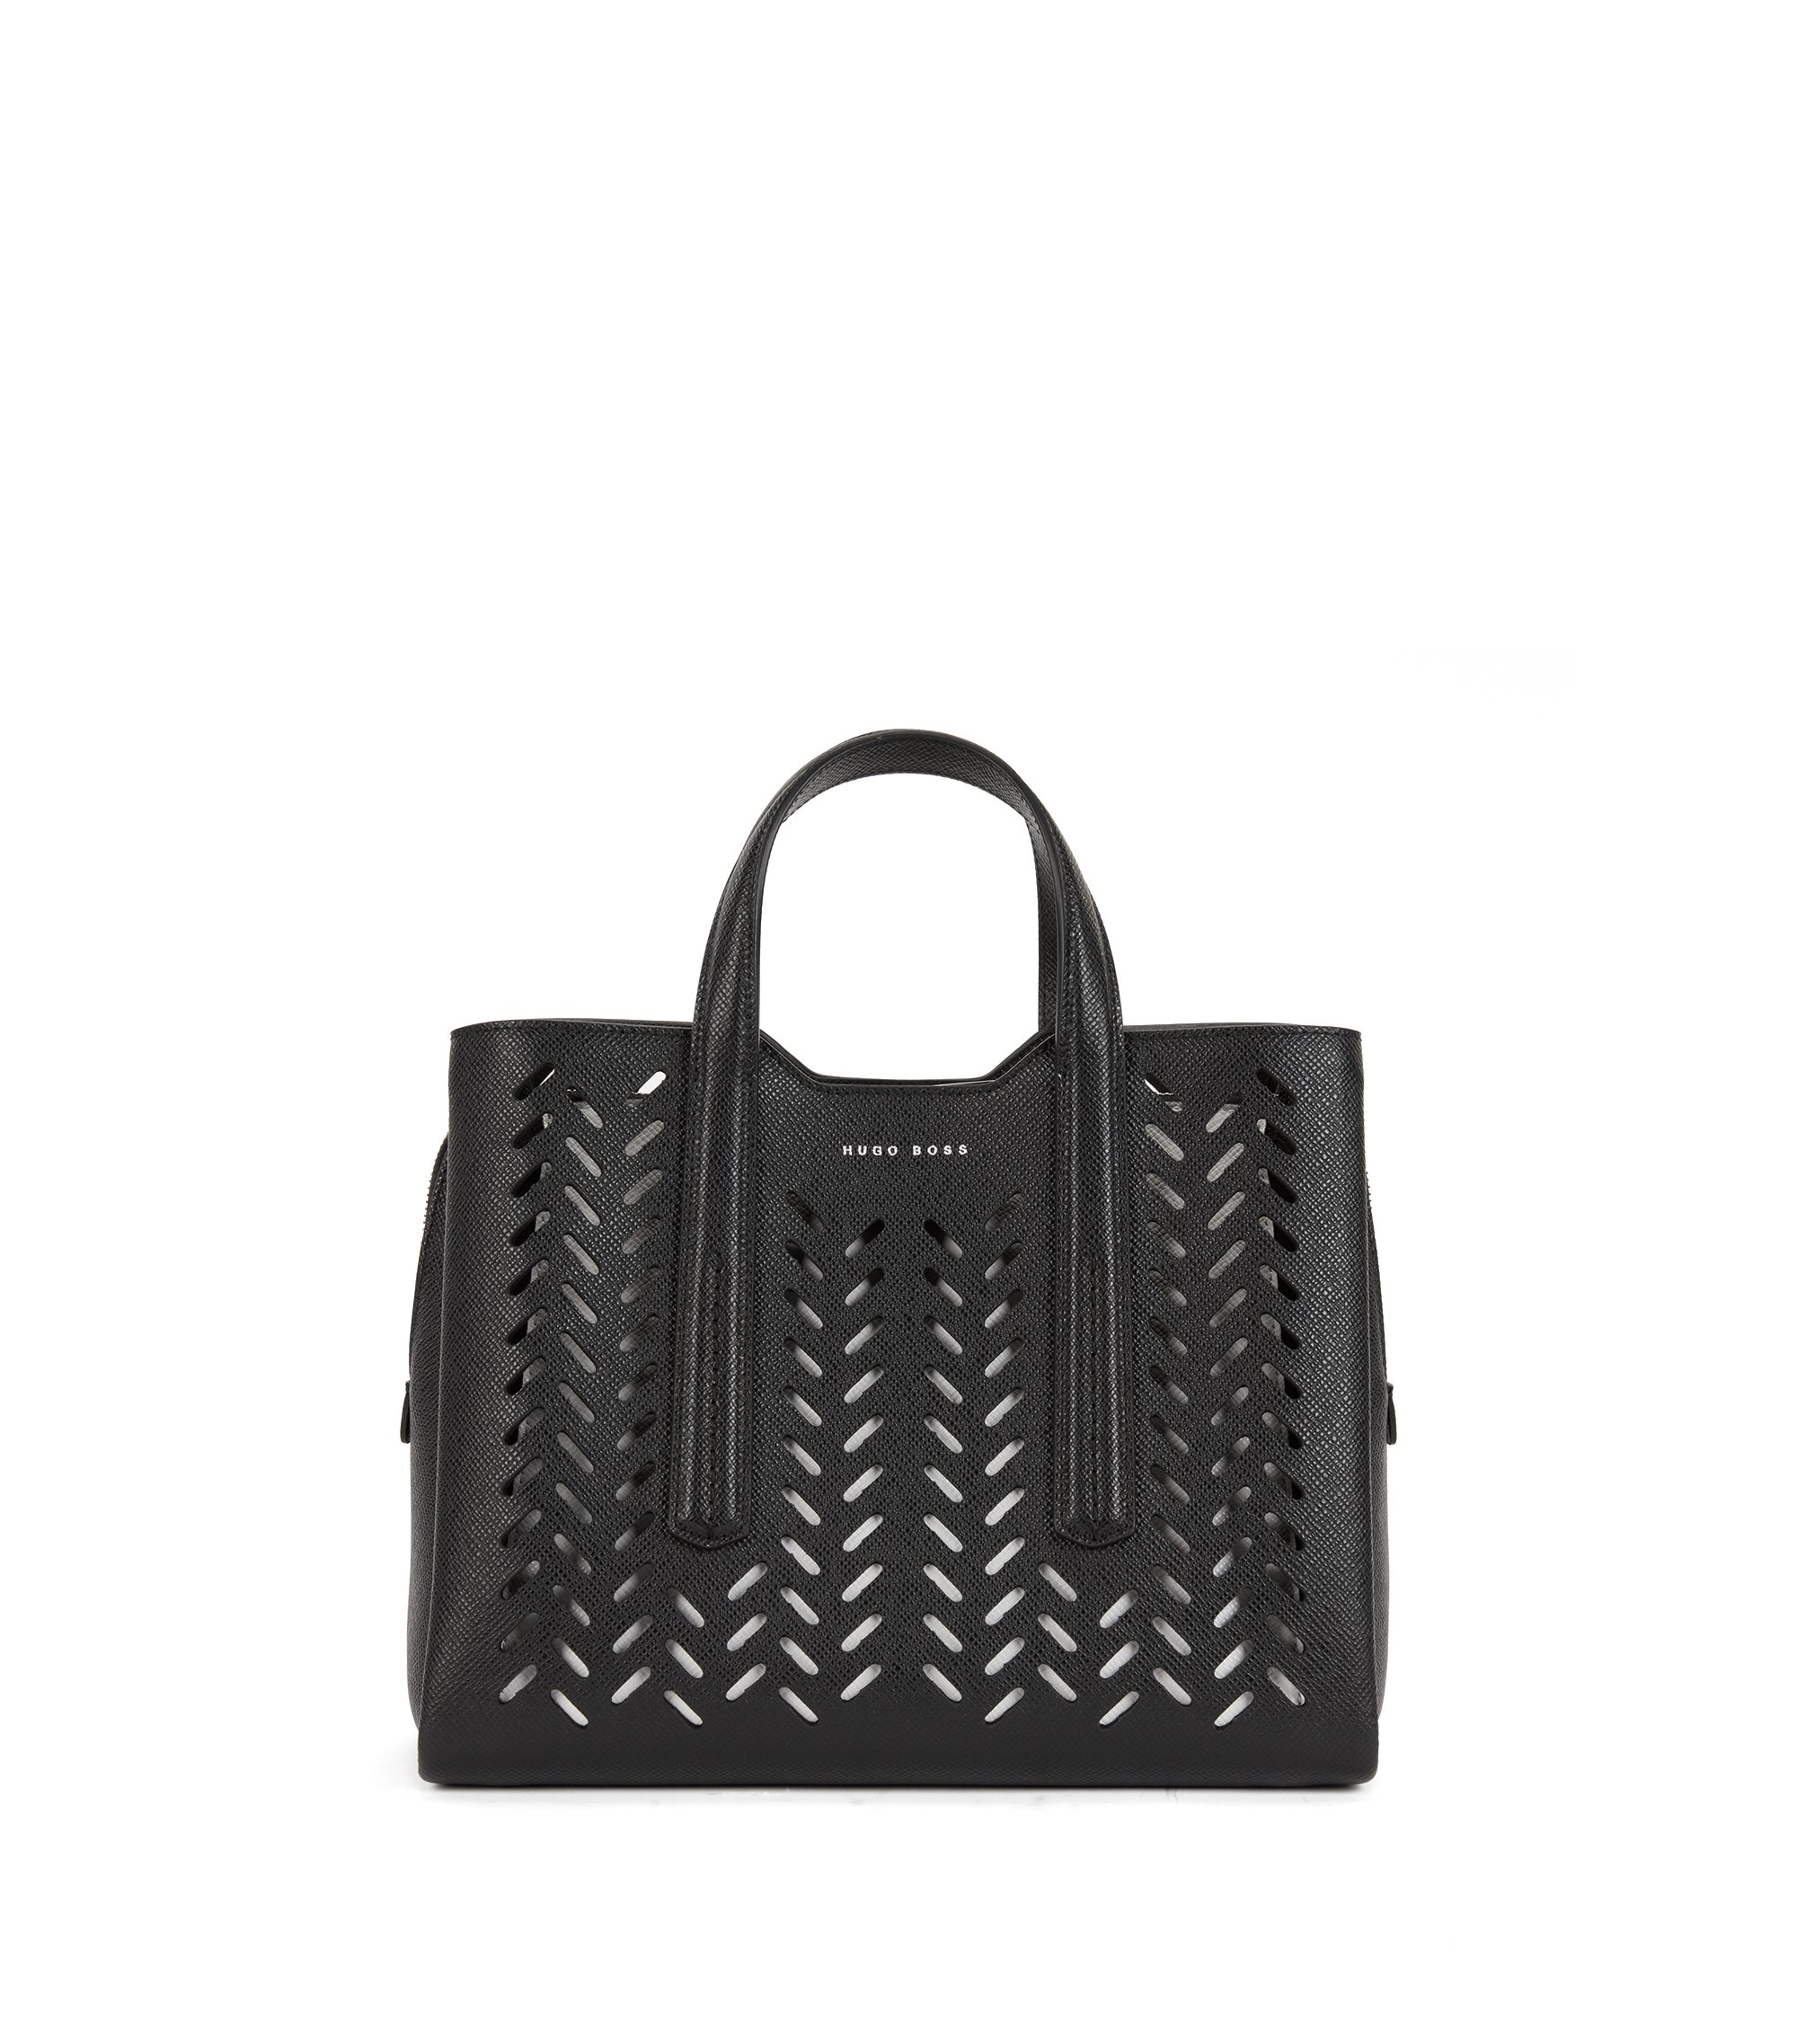 Tote bag in lasered Saffiano leather, Black